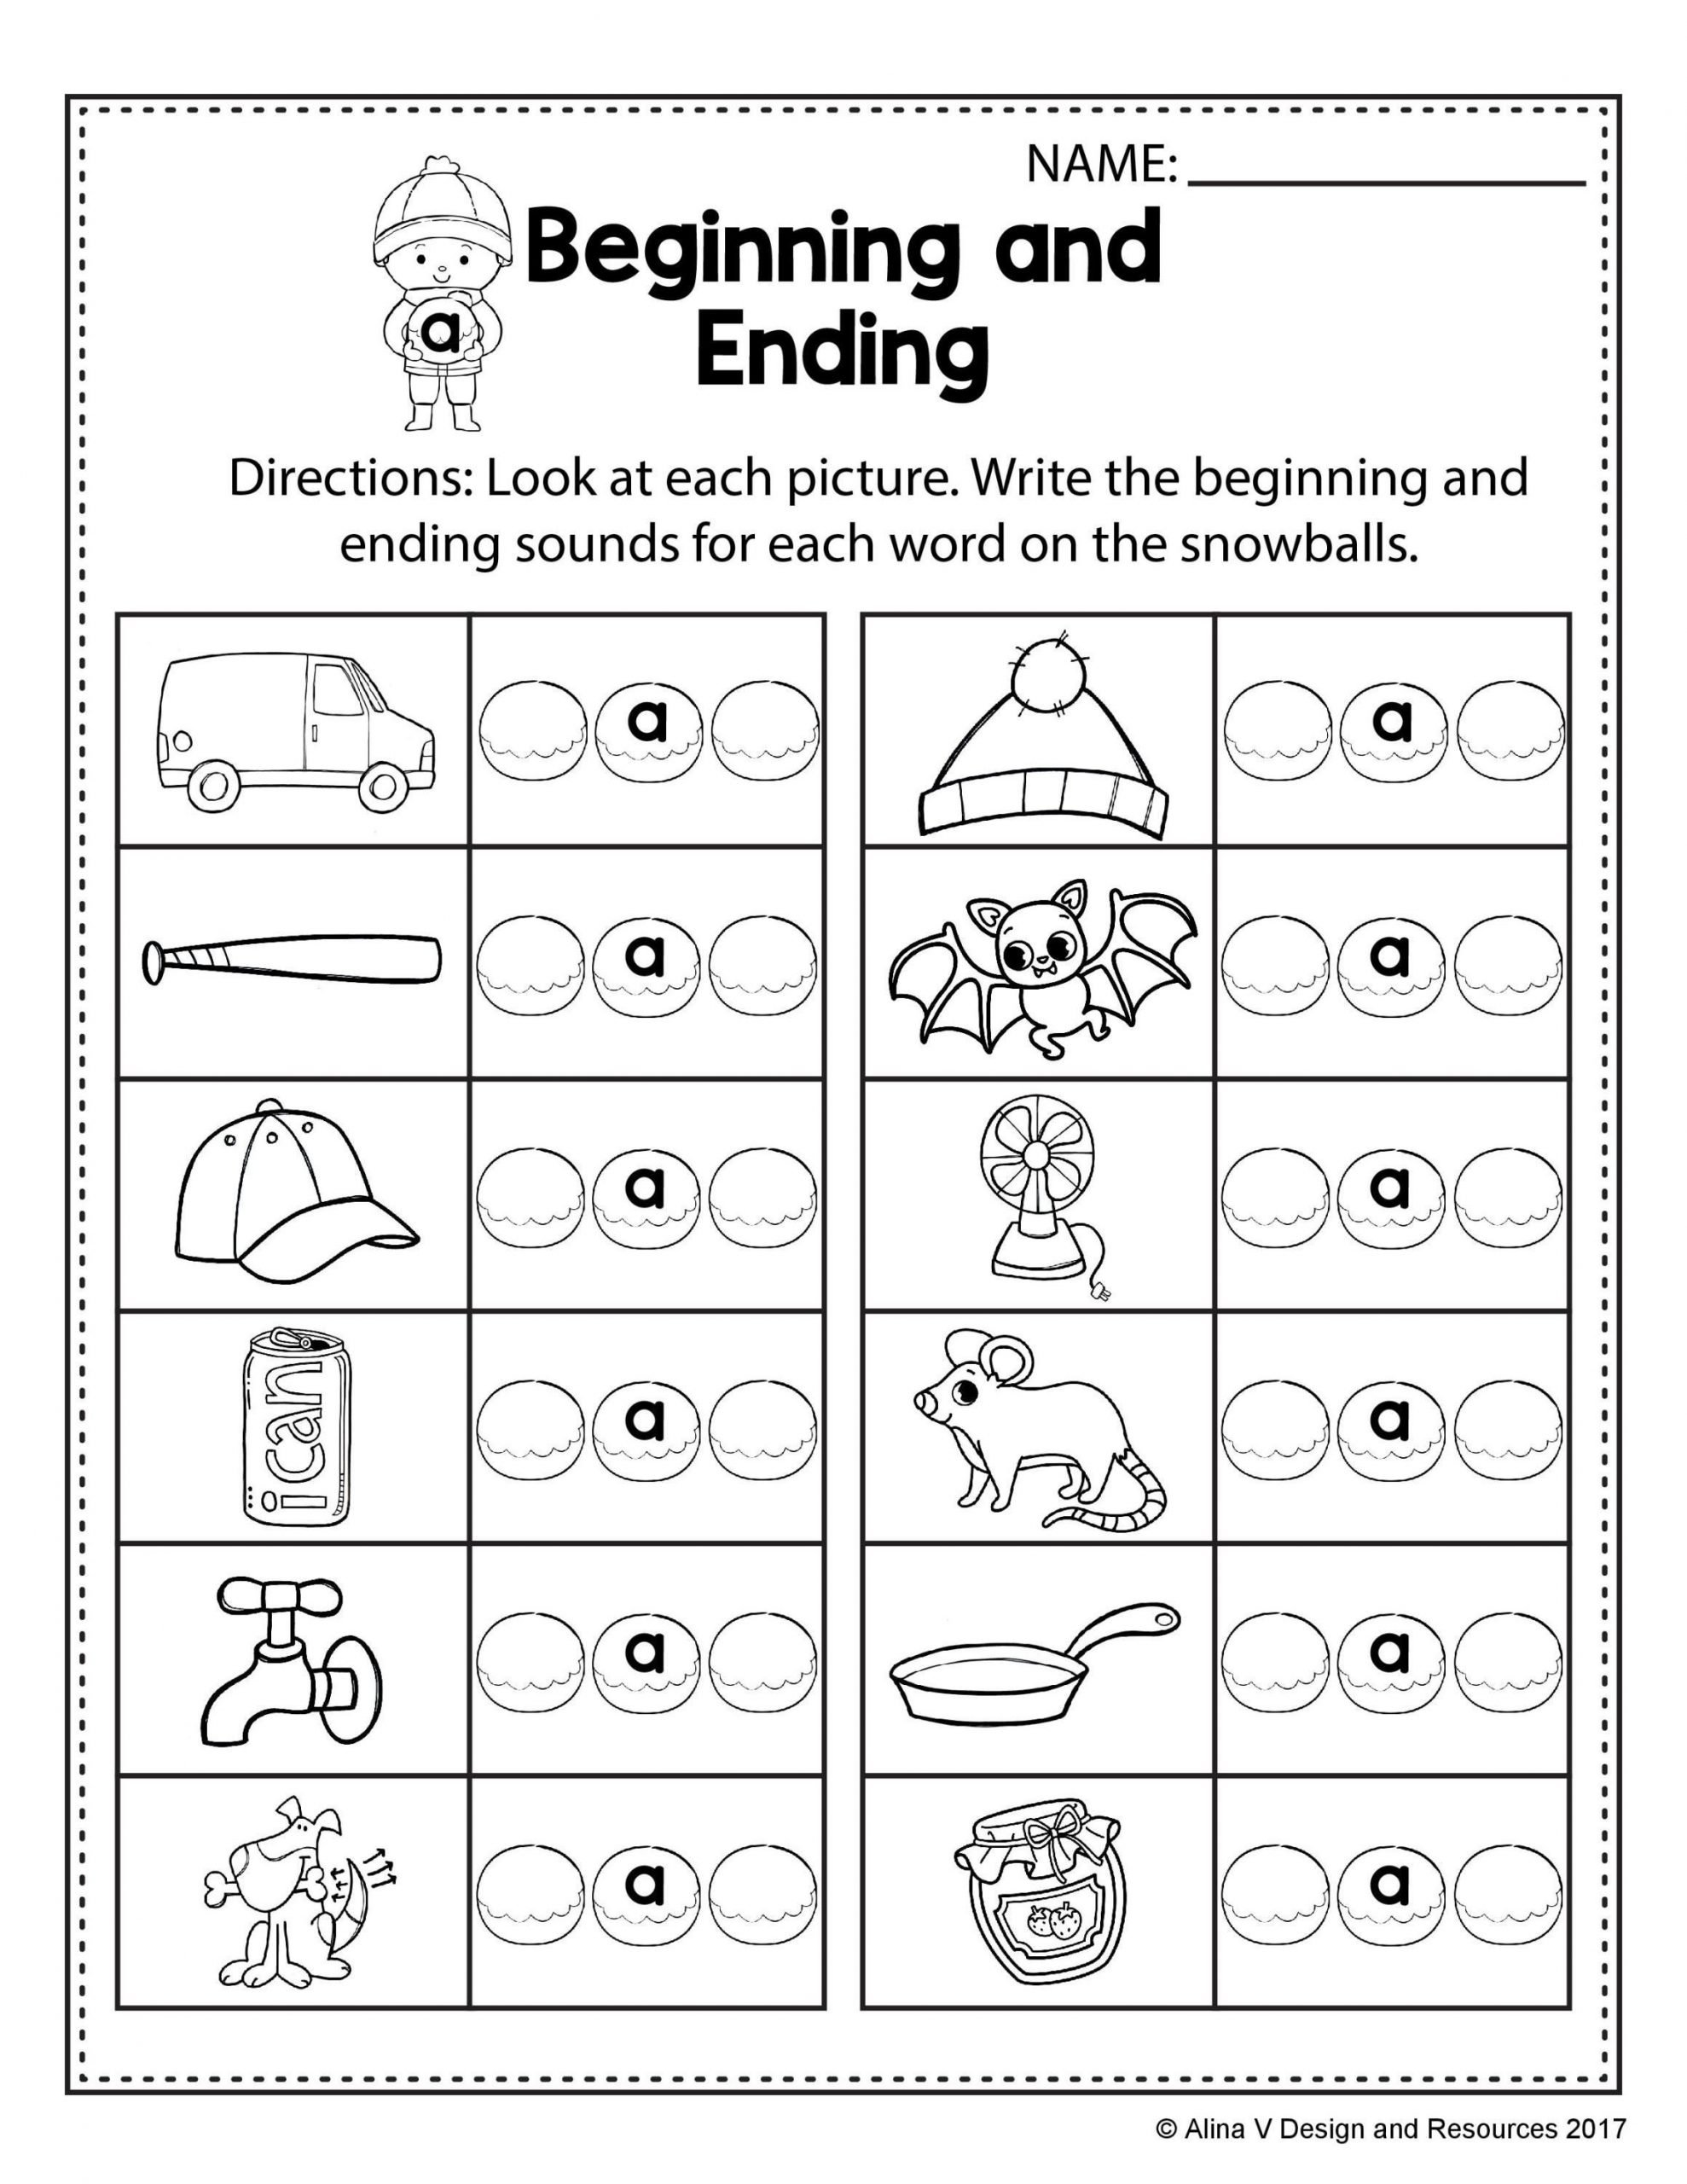 Cvc Words Worksheet Kindergarten Alinavdesign